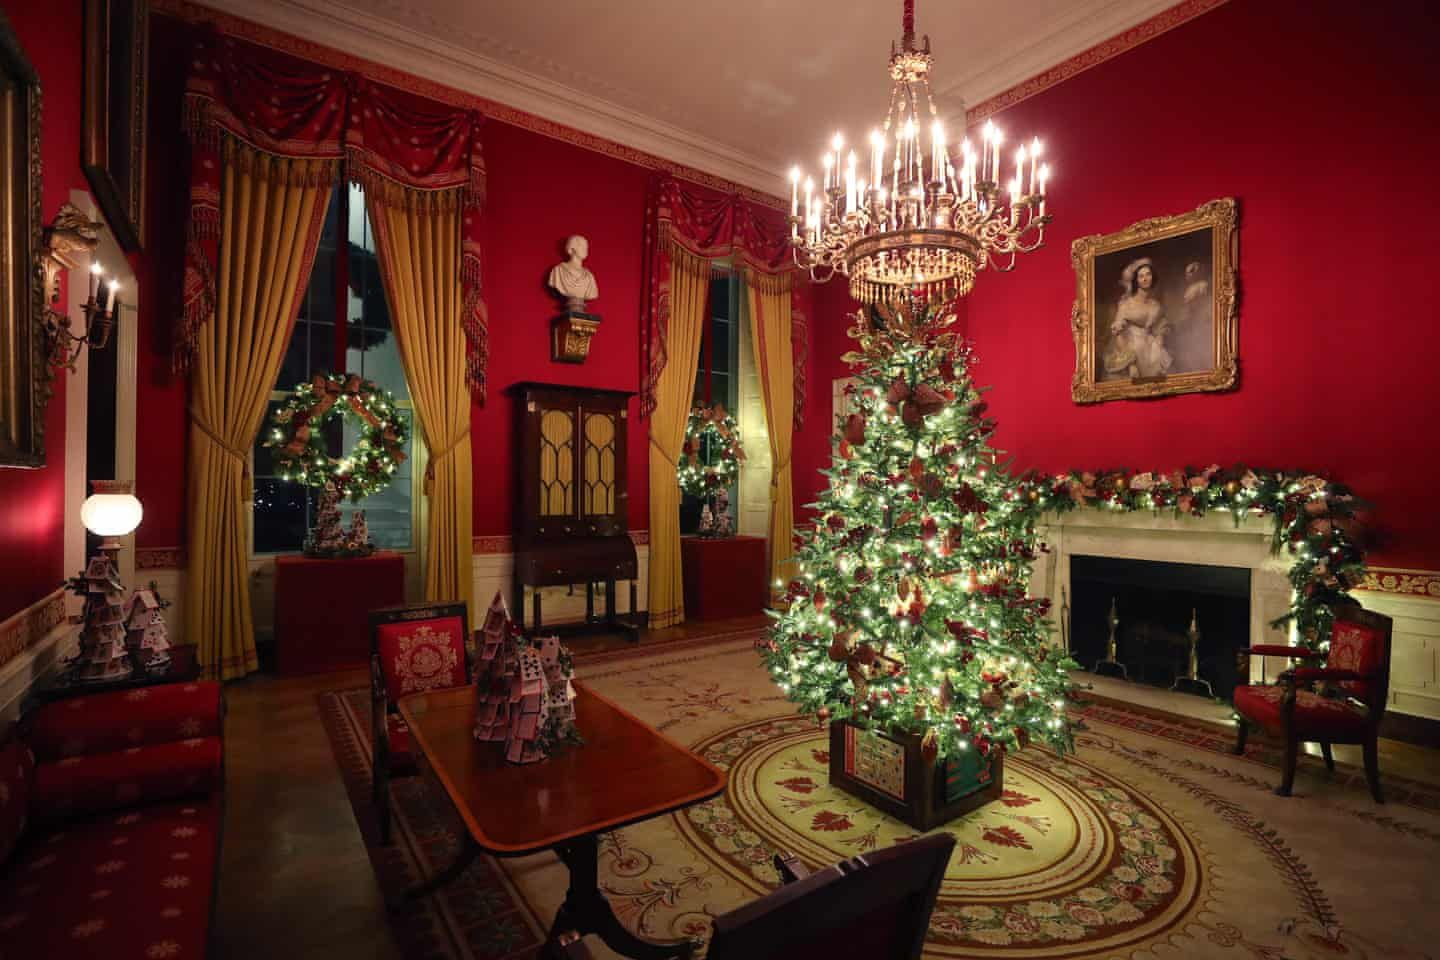 The White House S 2019 Christmas Decorations In Pictures White House Christmas Decorations White House Christmas White House Christmas Tree